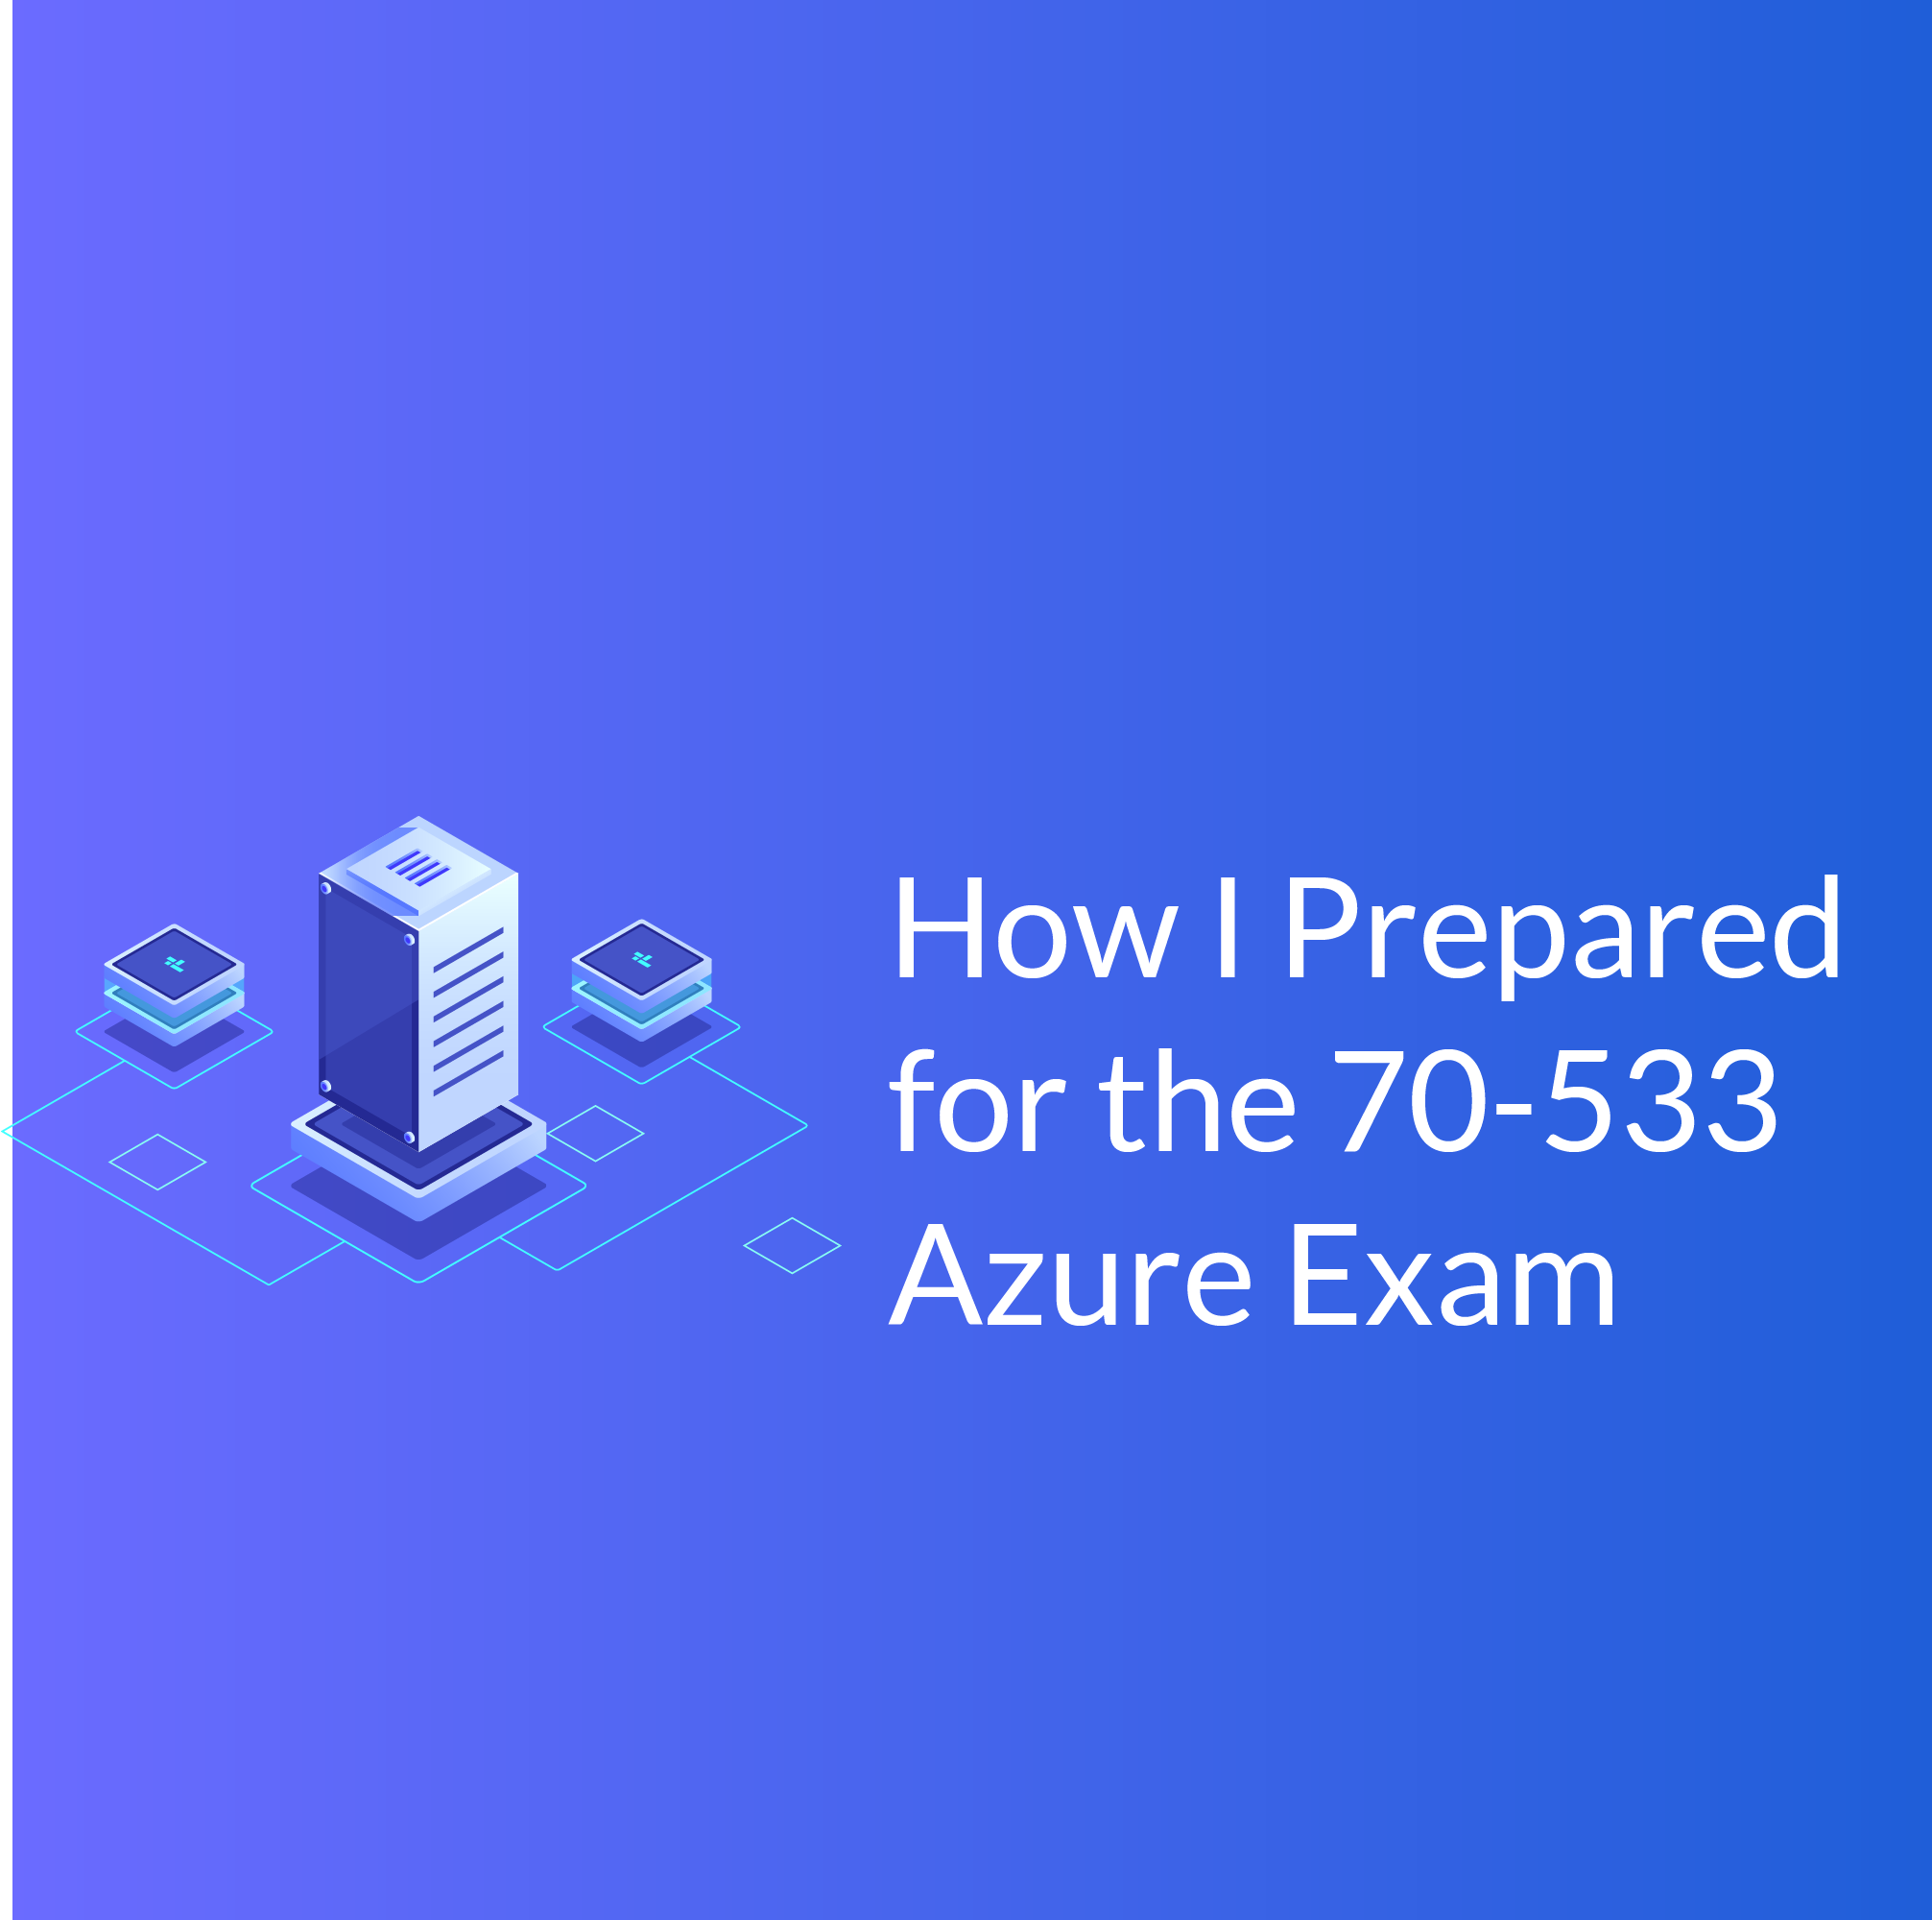 How I prepared for the 70-533 Azure Exam - Cloud Academy Blog